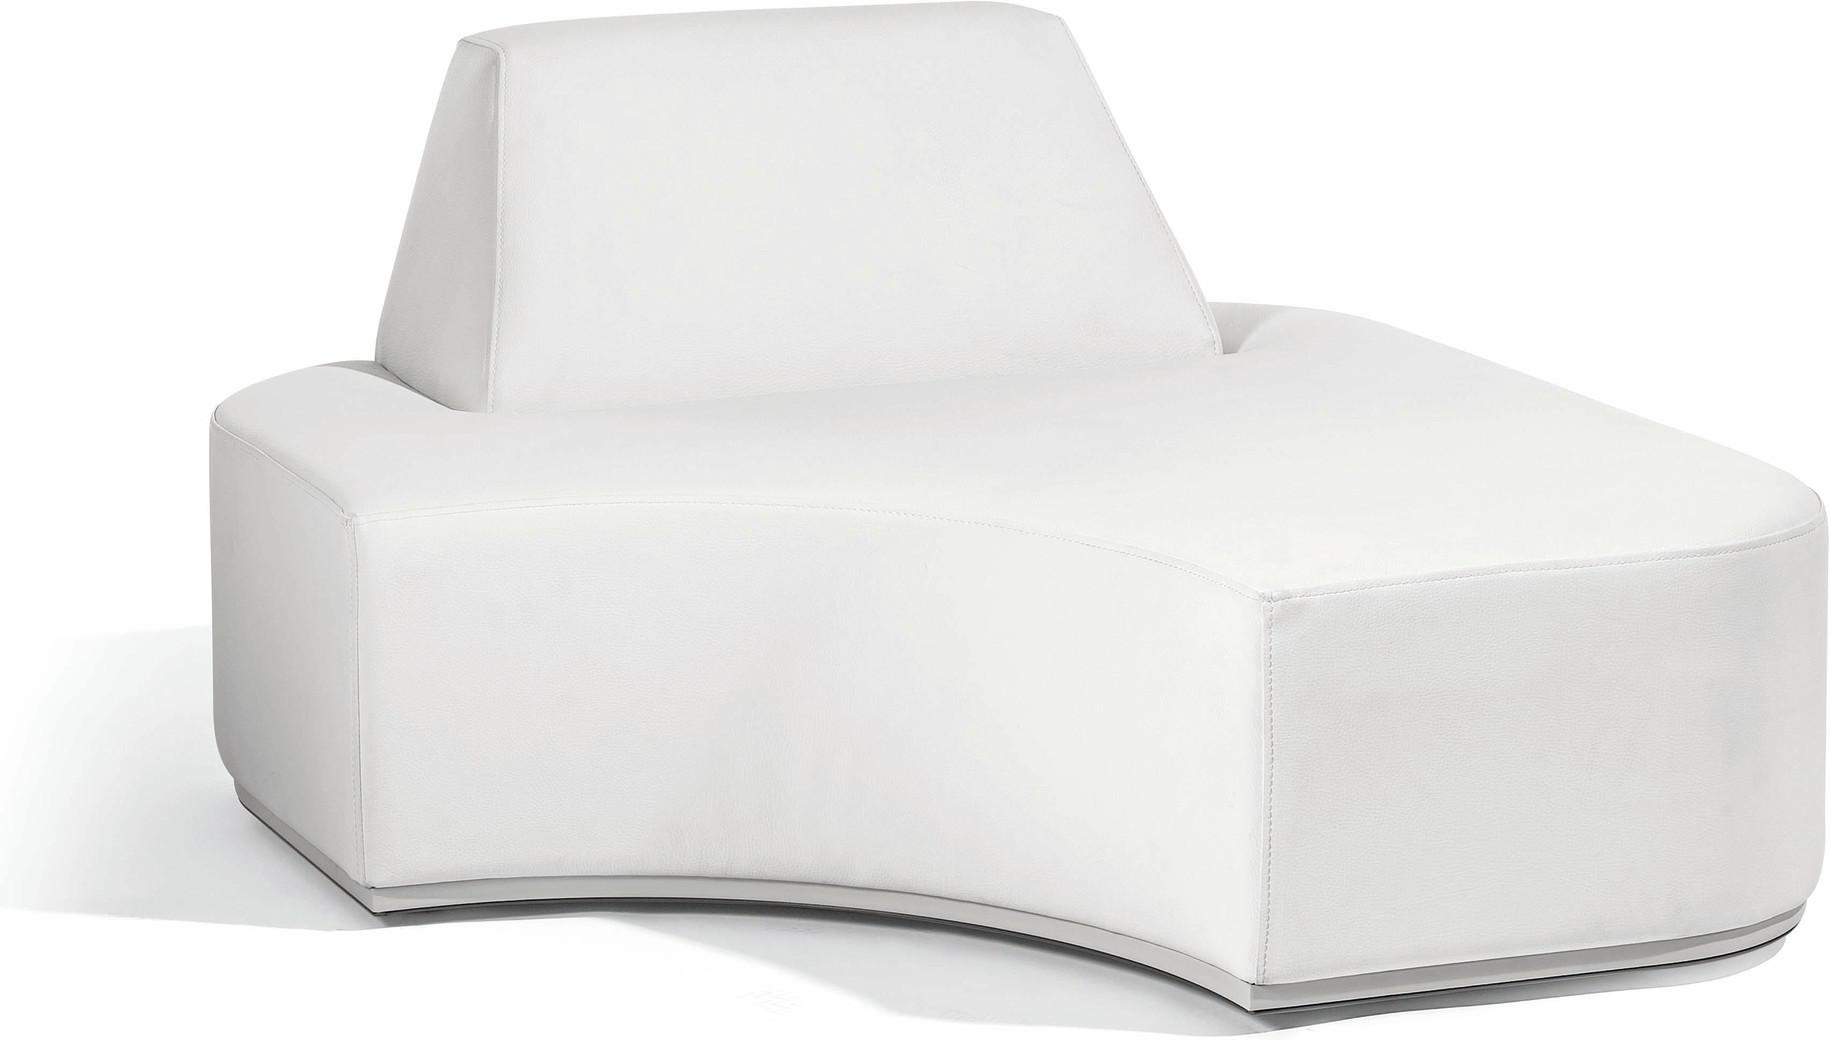 Moon Island left corner seat nautic leather white